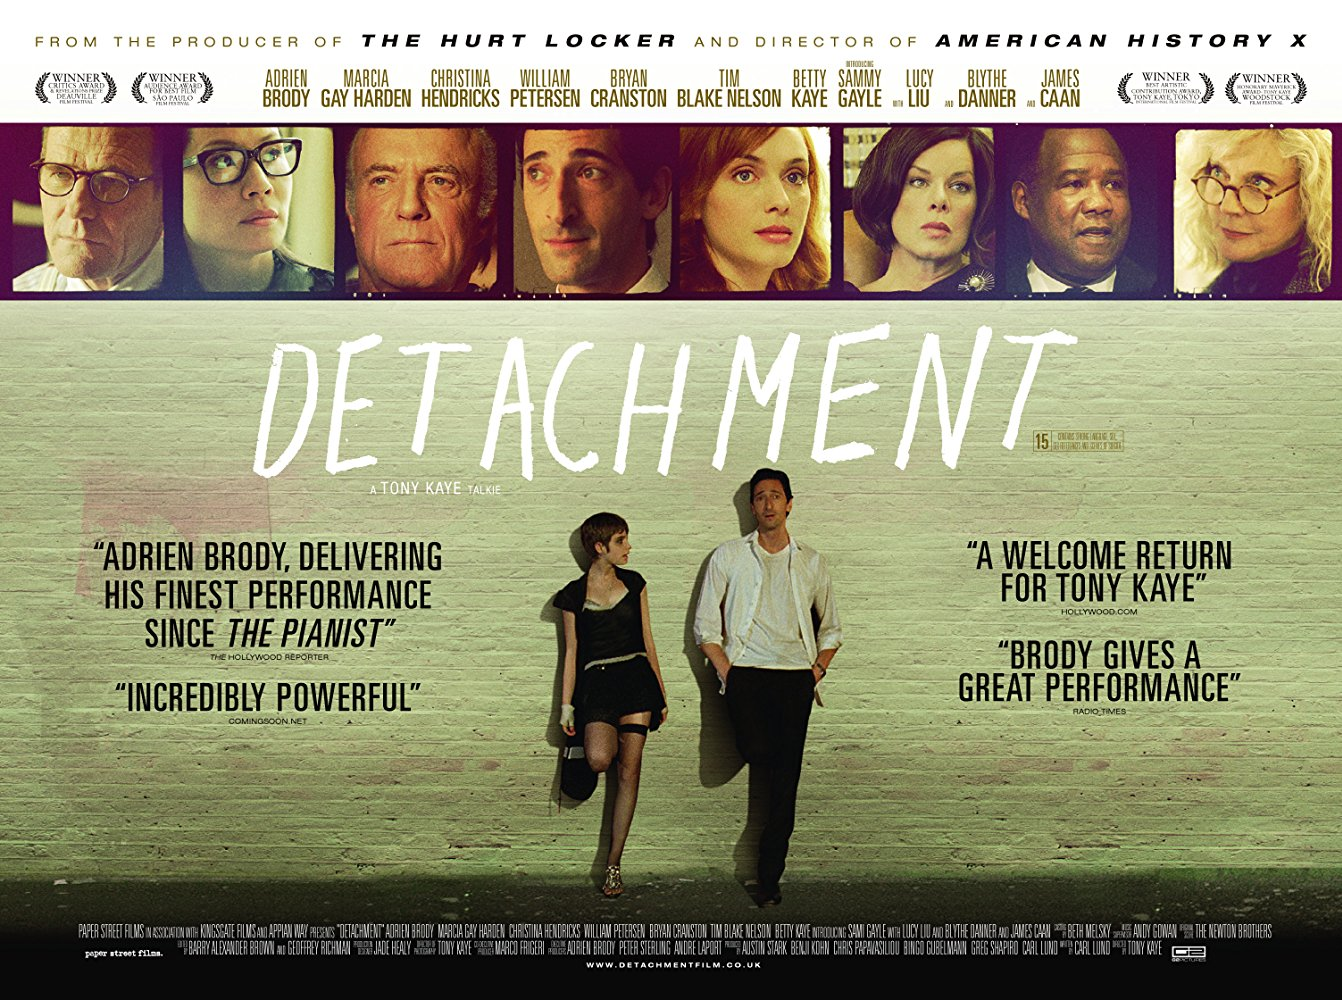 Adrien Brody In «Detachment»